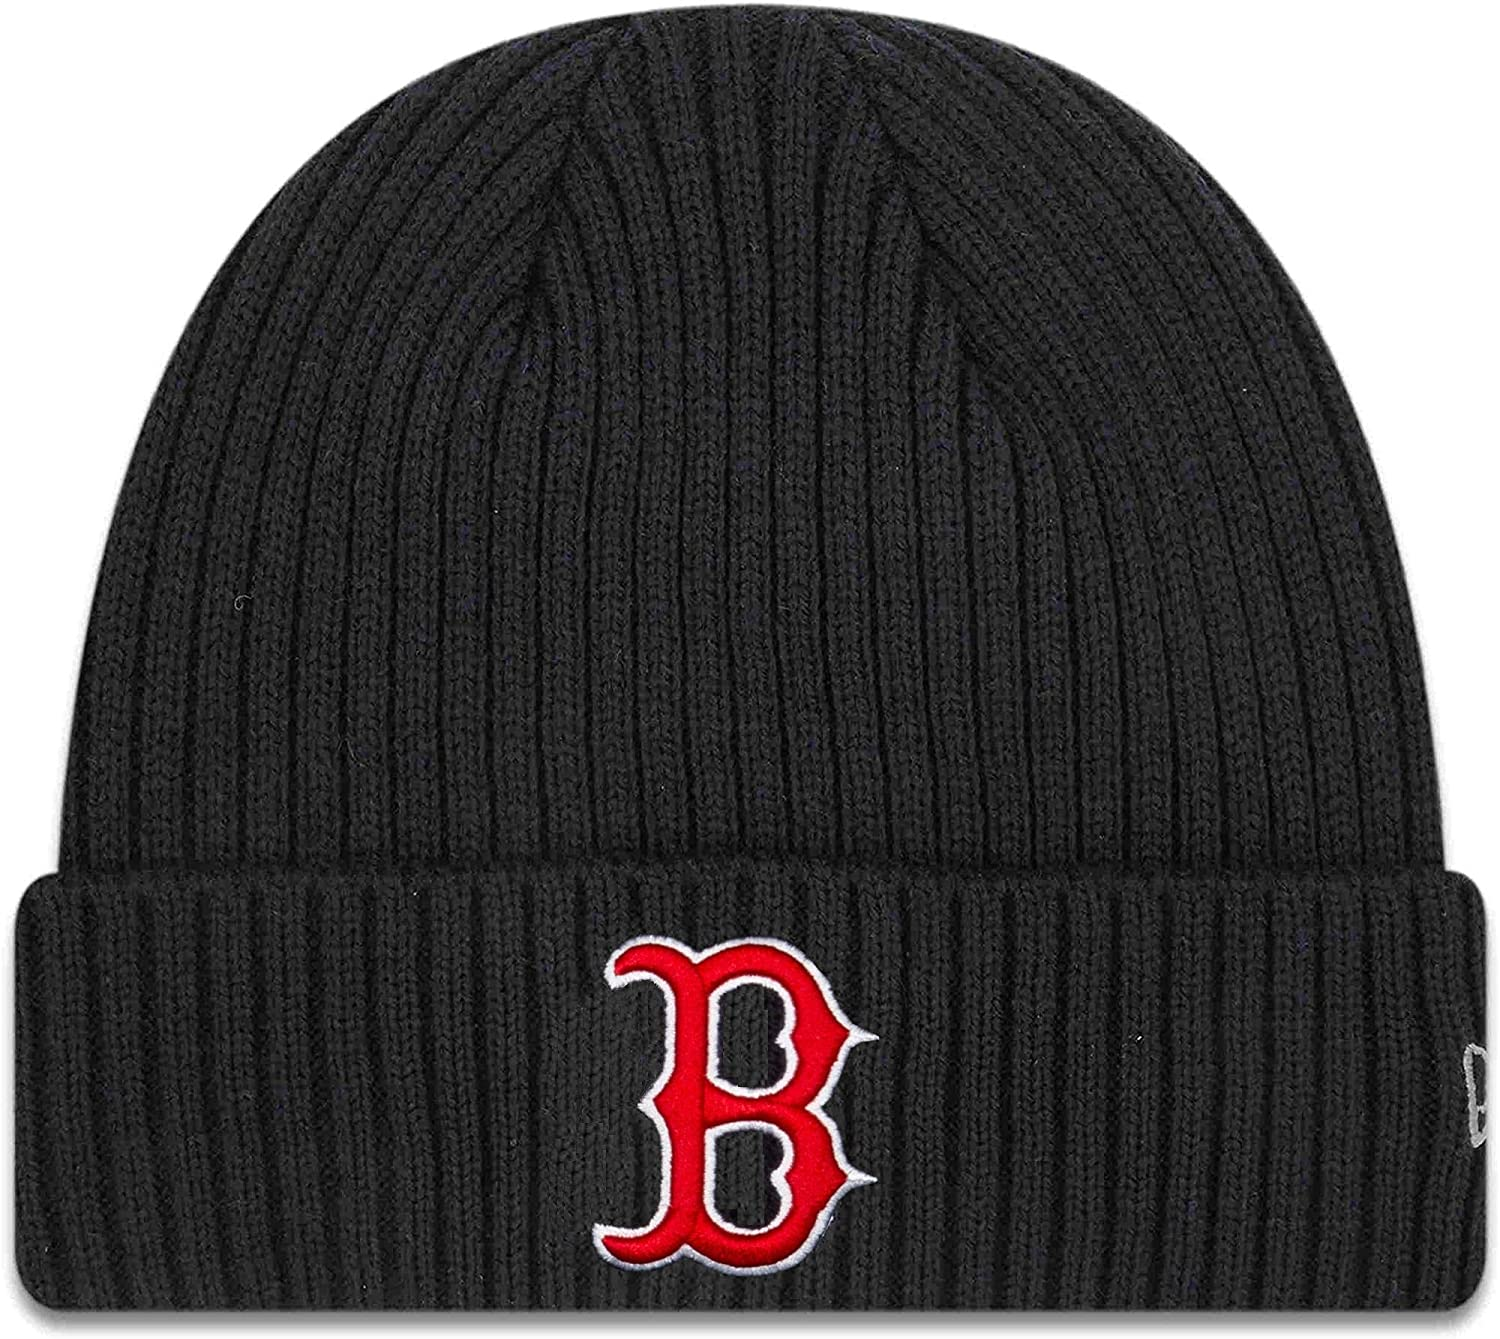 One Size New Era MLB Genuine Merchandise Unisex Team Color Cuffed Knit Beanie Cap Hat One Size Fits Most